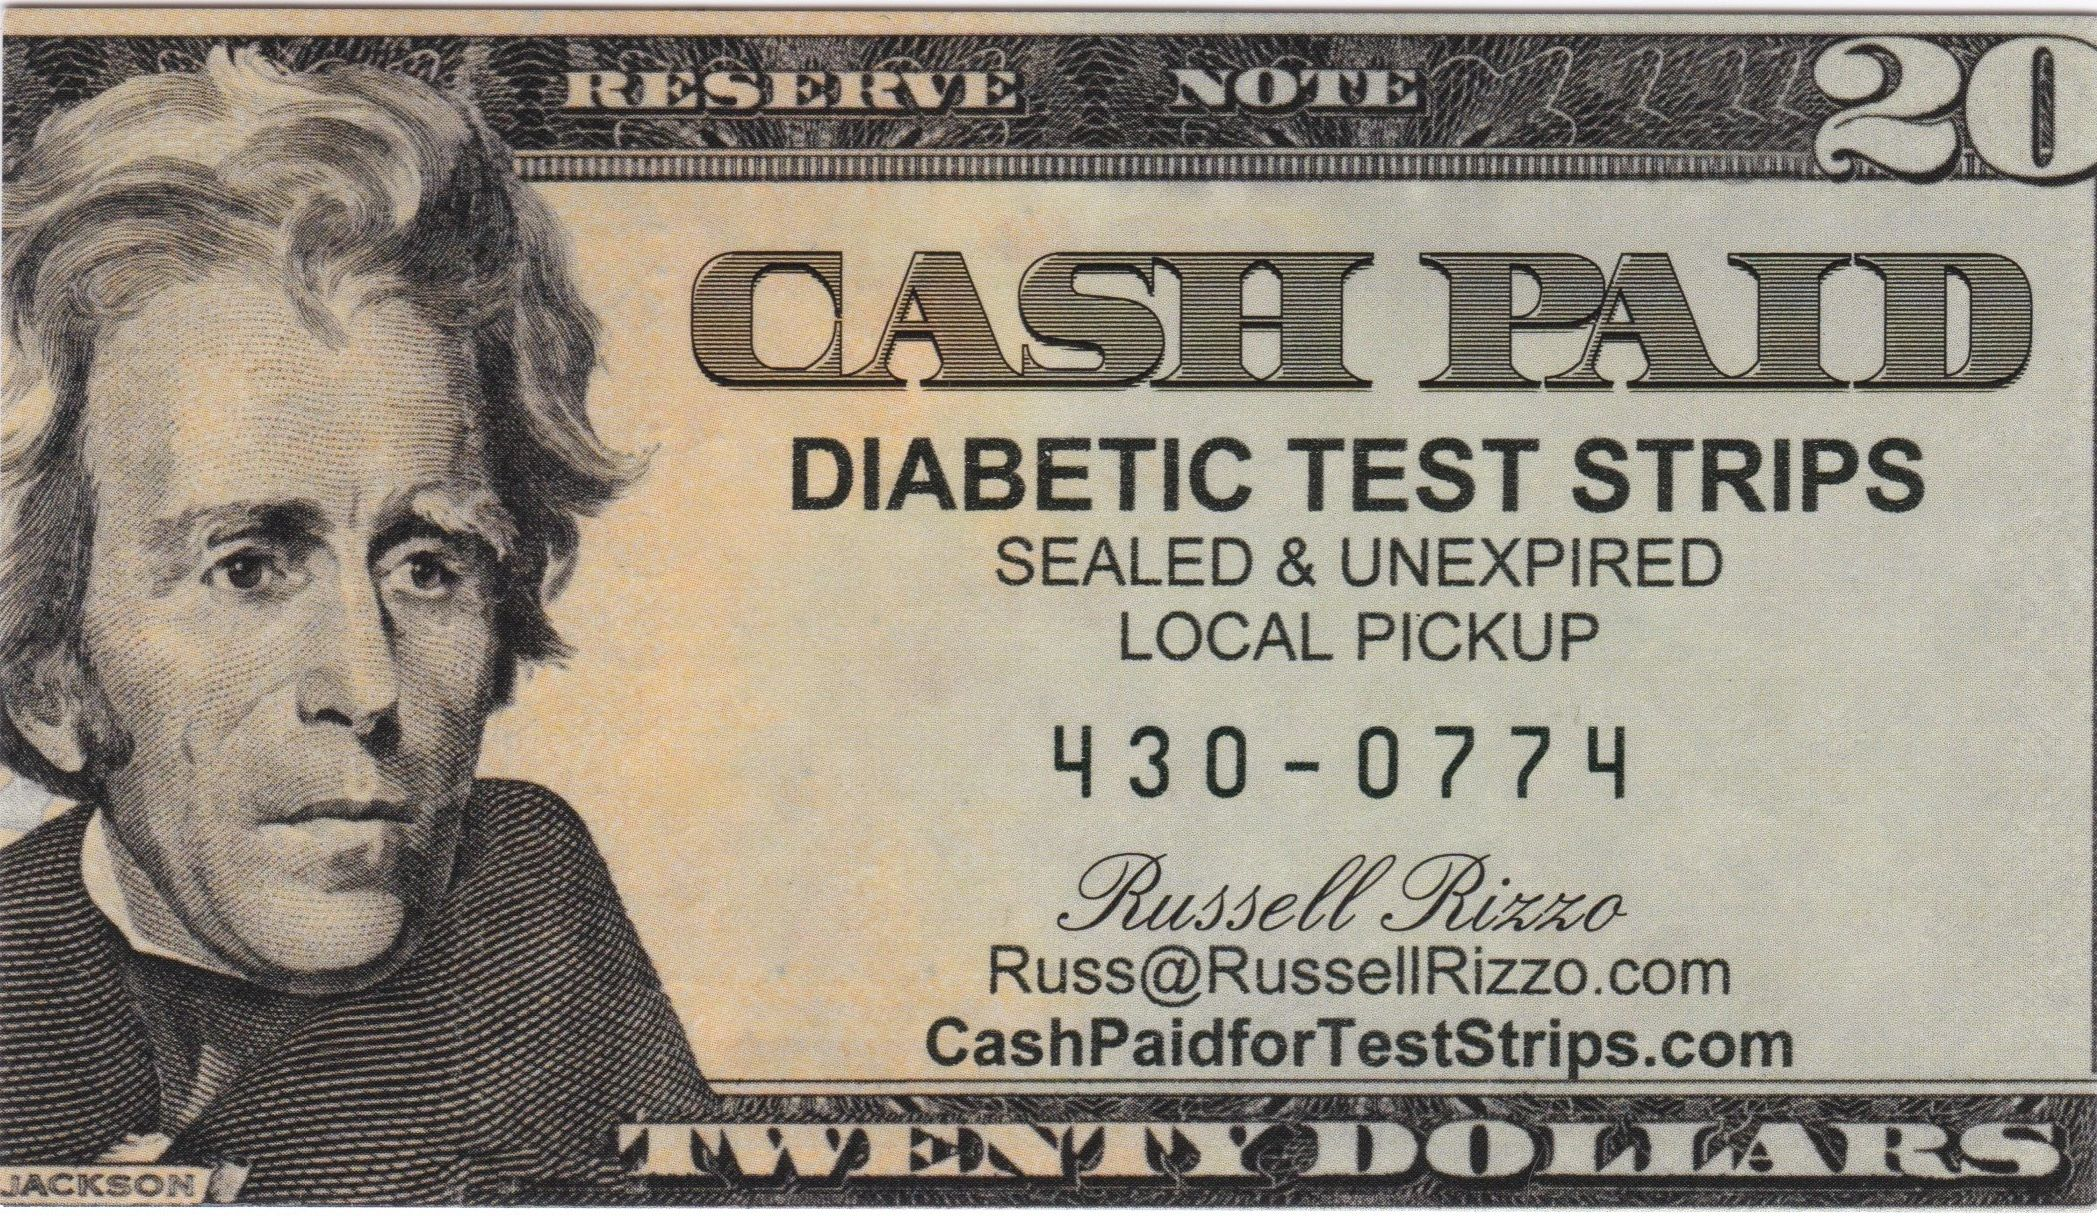 Cash paid for diabetic test strips